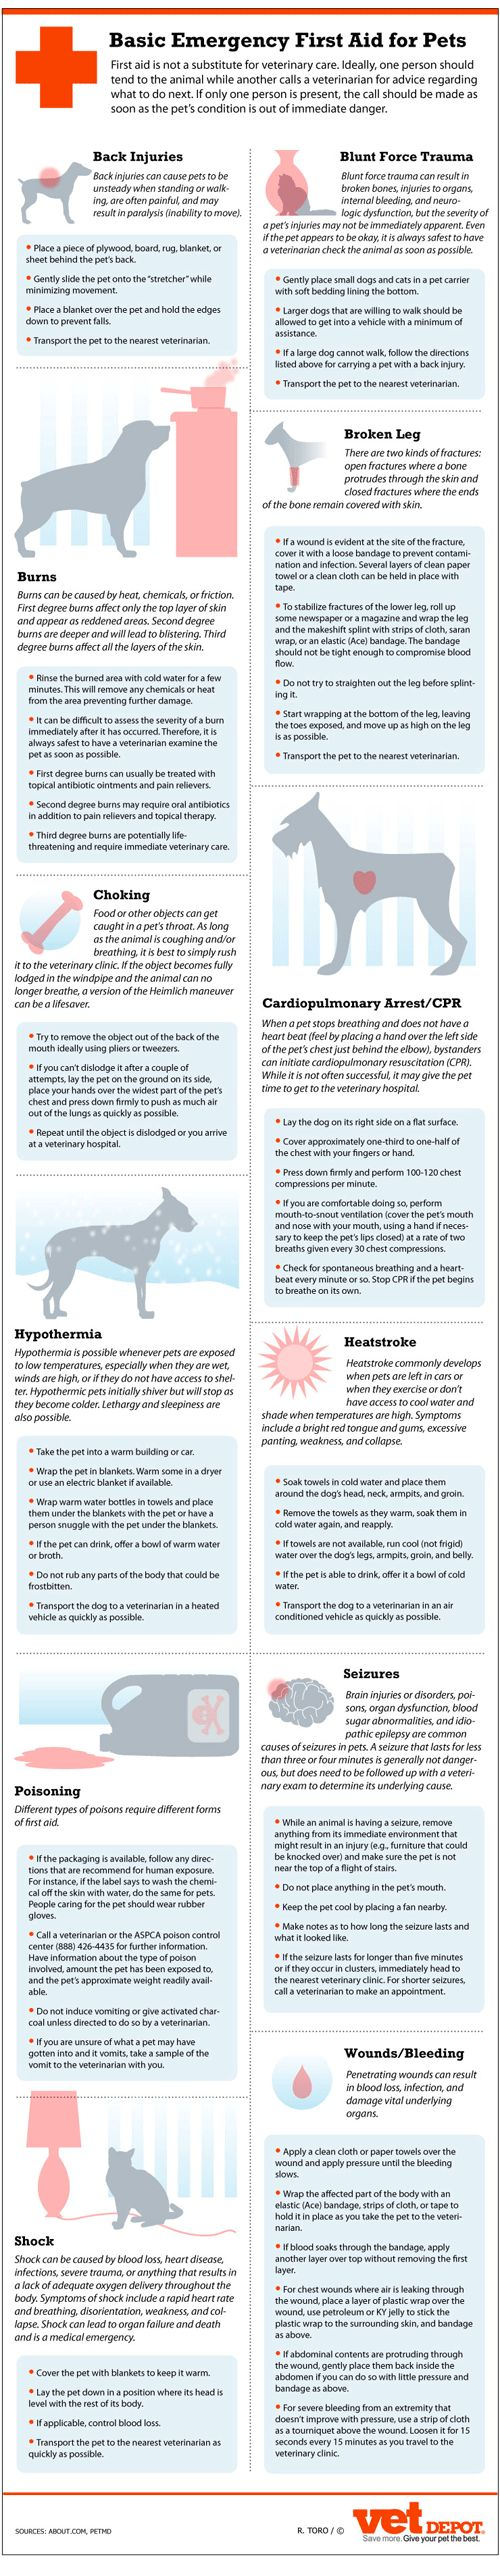 Basic Emergency First Aid for Pets Infographic